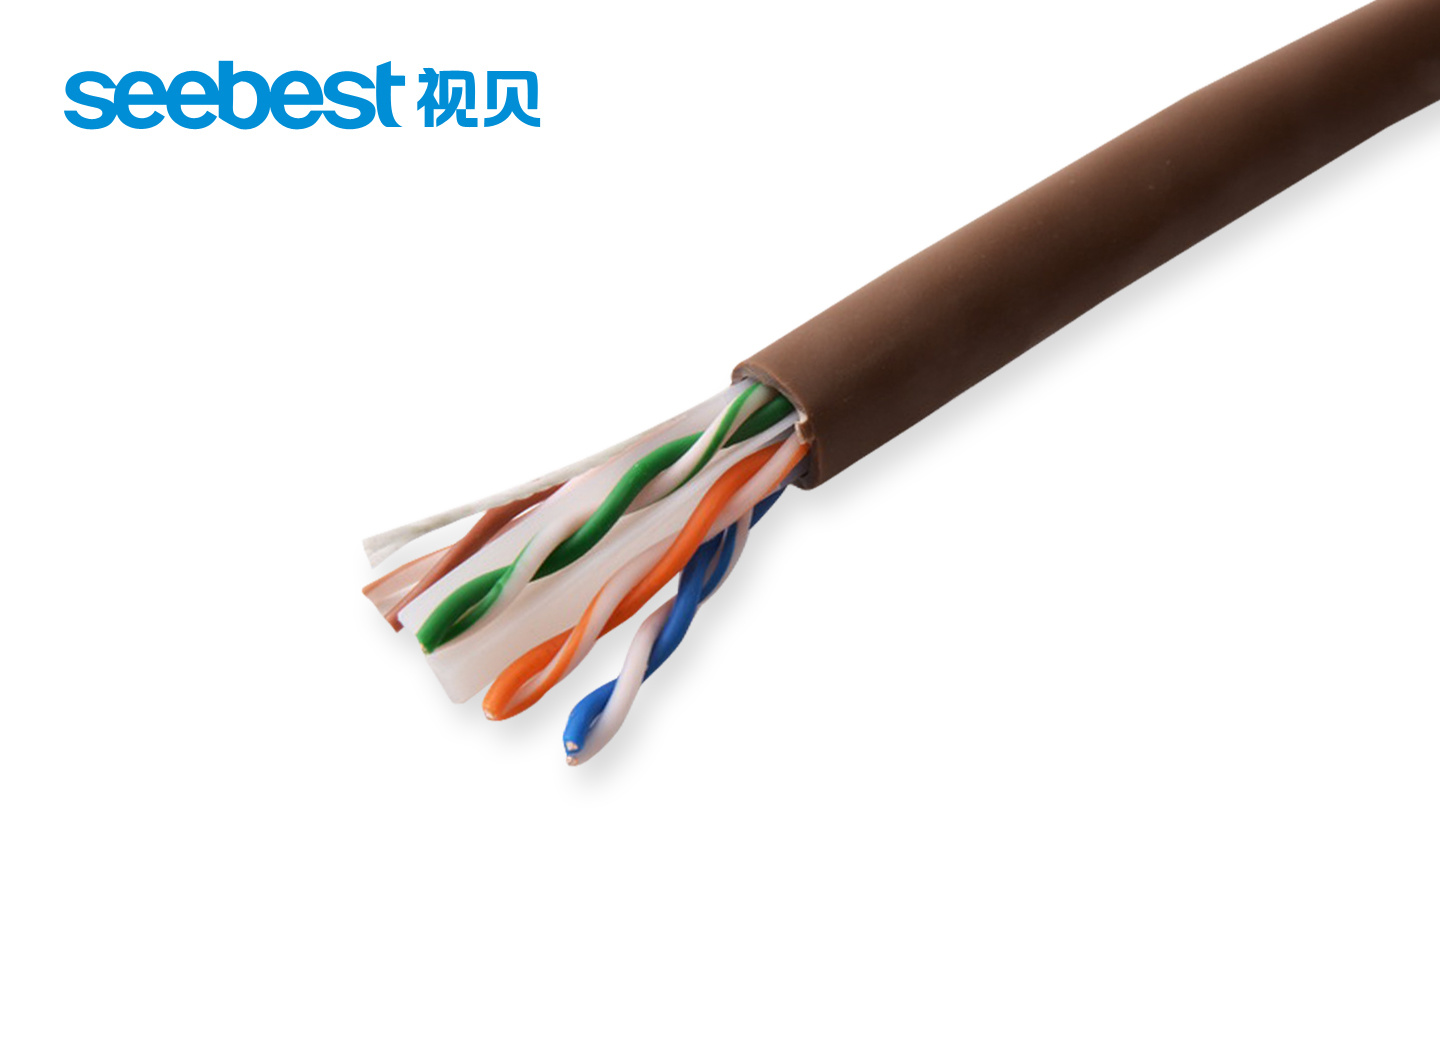 China Wholesale High Quality Cat5 Cat5e Cat6 Network Cable Conduit Wiring